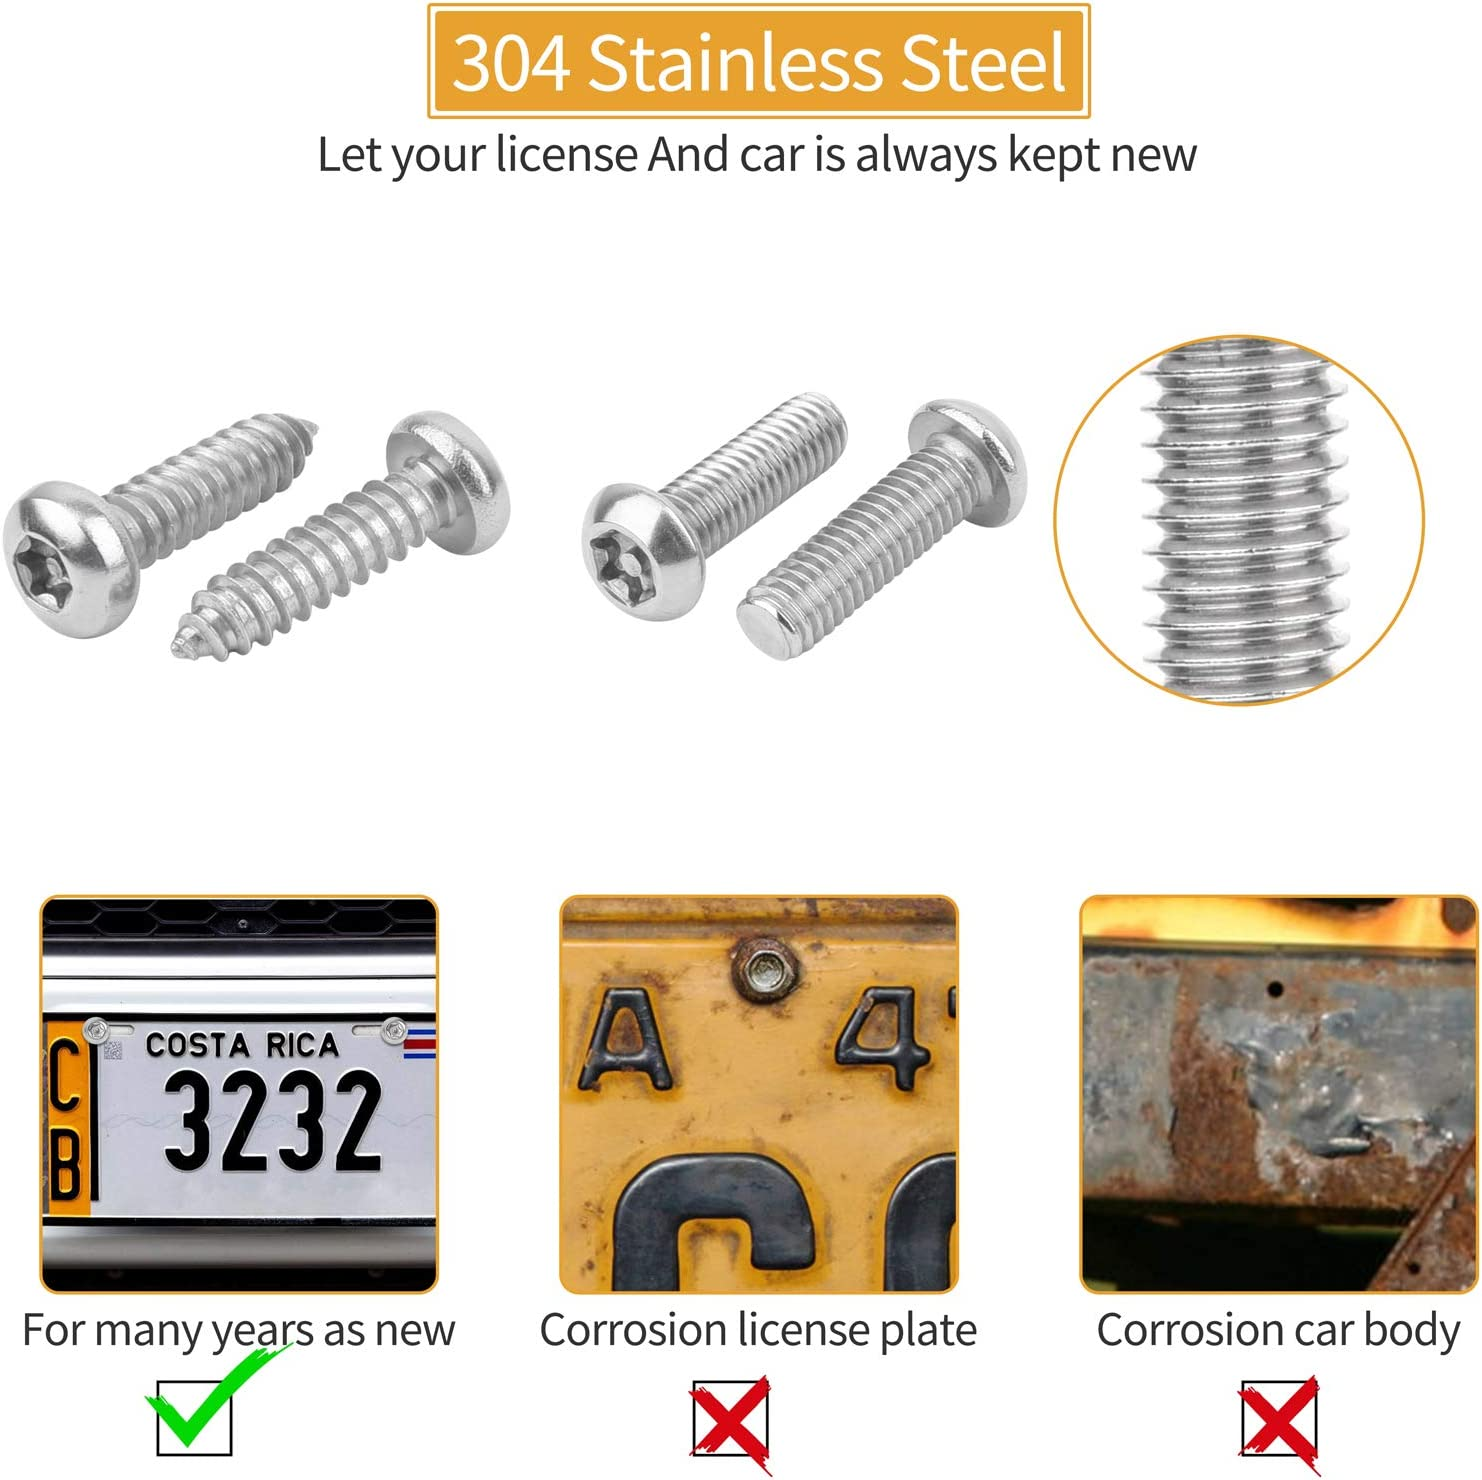 10PCS Stainless Steel Button Head Torx Bolts Fasteners Kits Rust Plate Screw Resistant M6 3//4 Security Tamper Resistant Machine License Plate Screws VIGRUE Anti Theft License Plate Screws